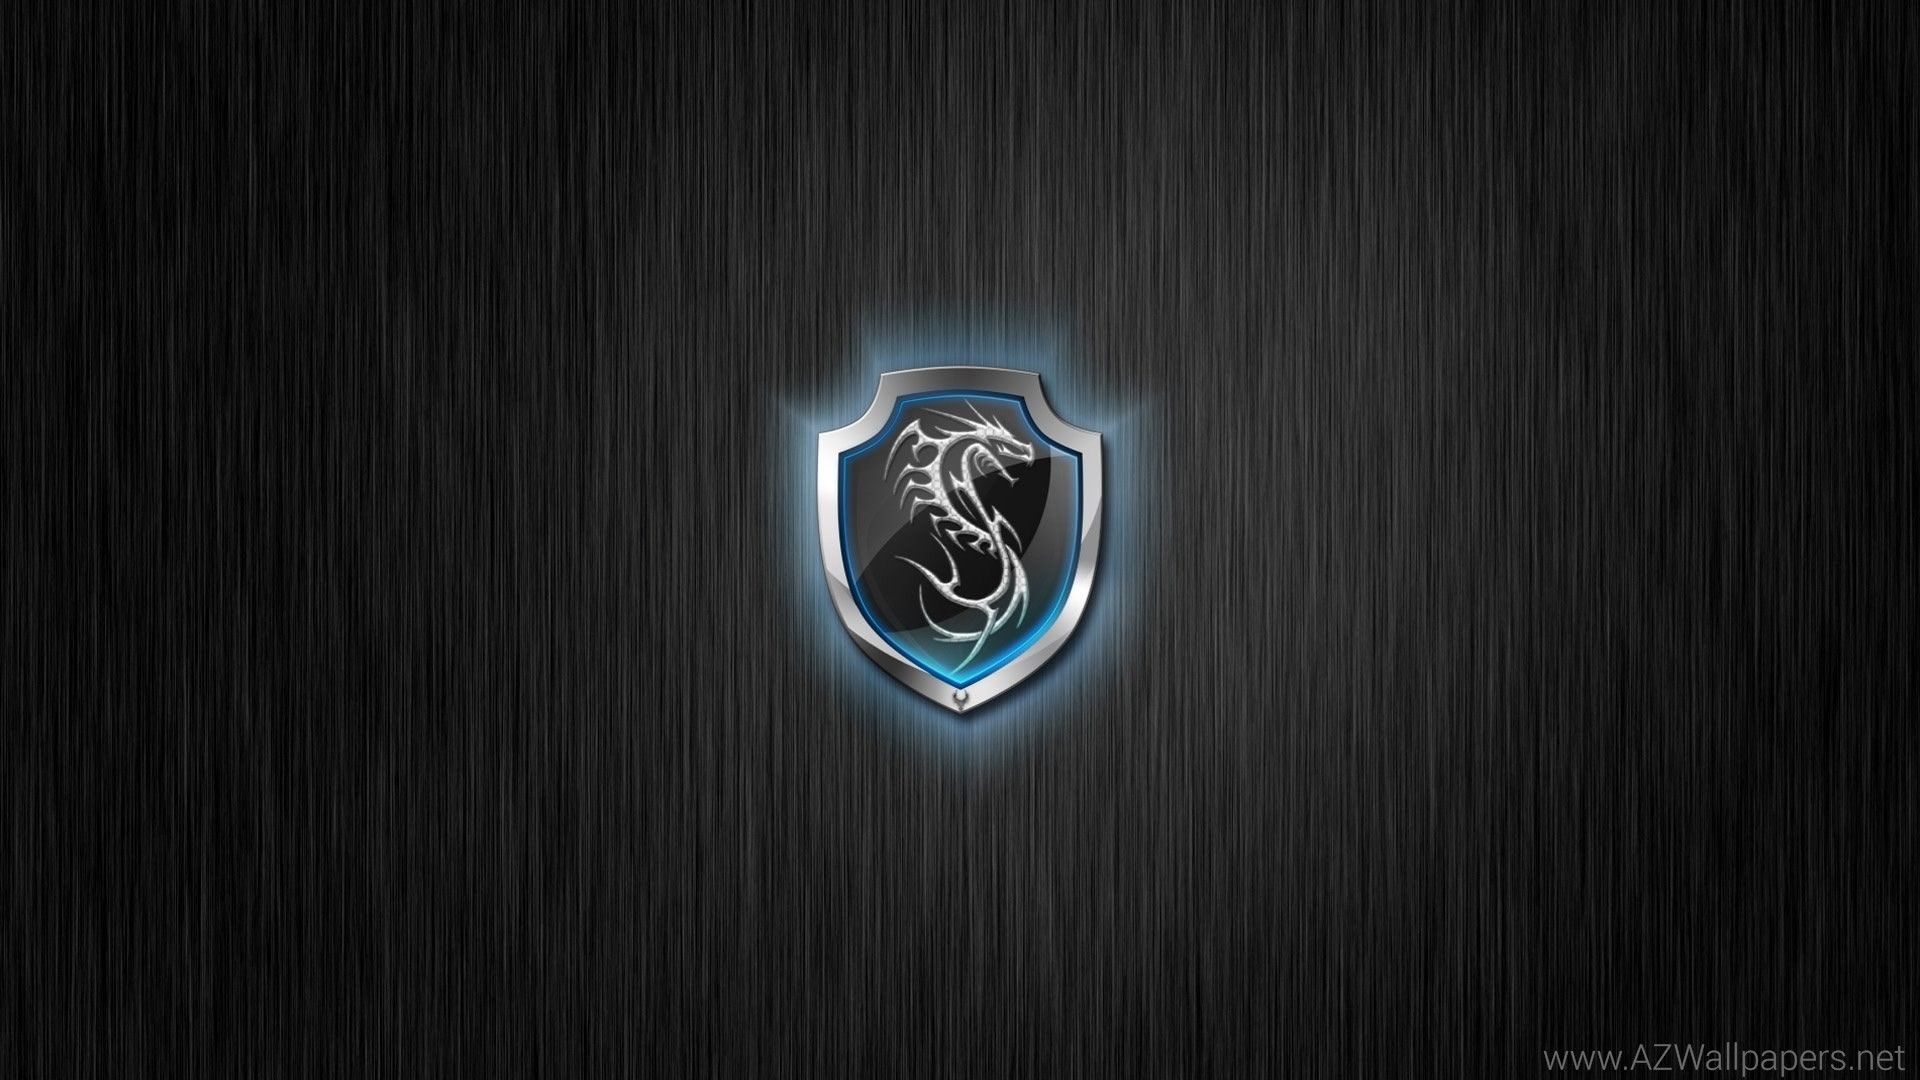 Dragon Logo Wallpapers 01, HD Desktop Wallpapers